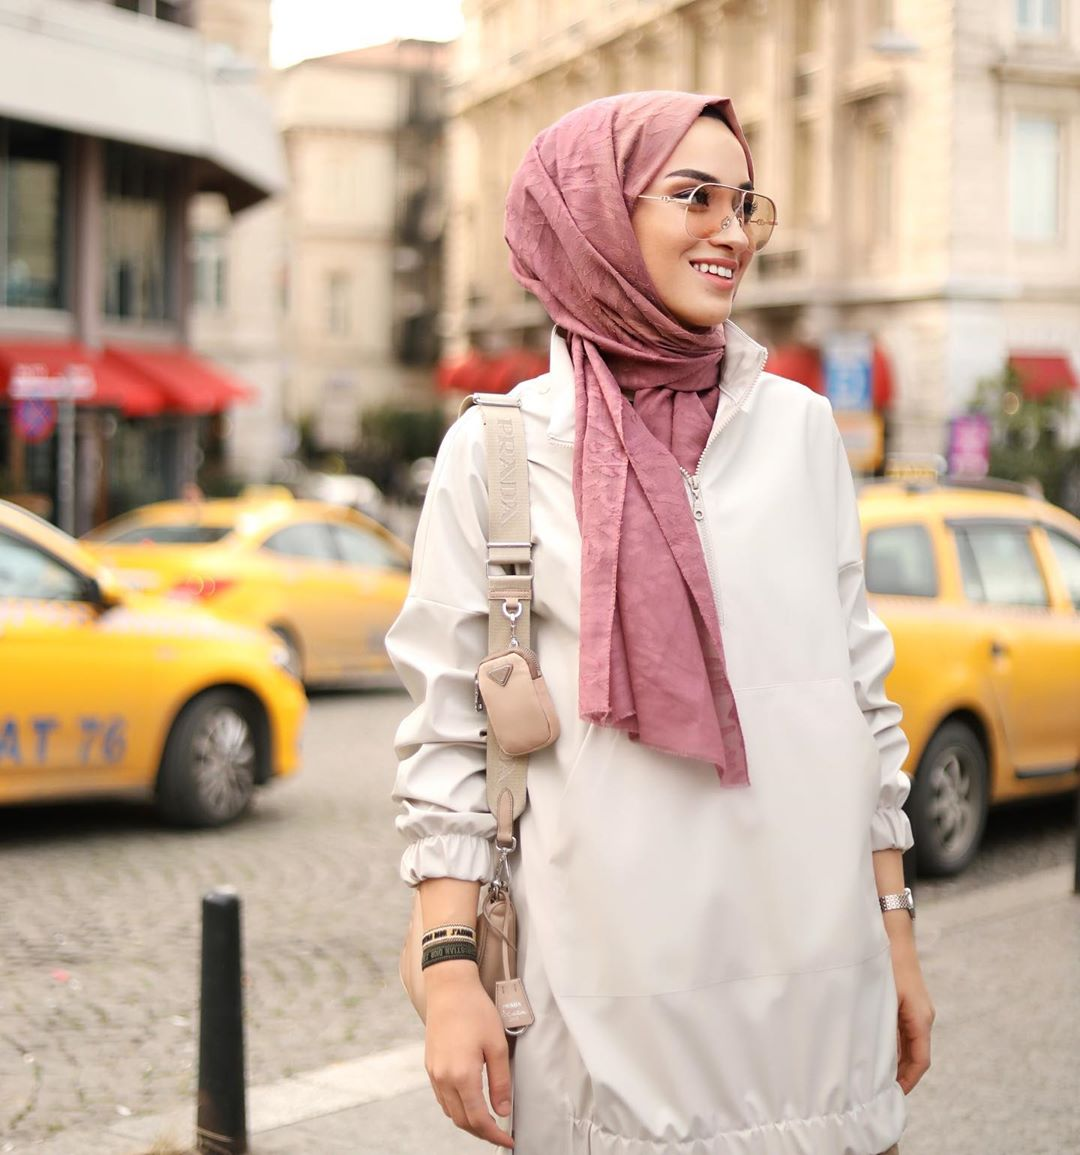 Stylish Ways To Wear Sunglasses For Hijab